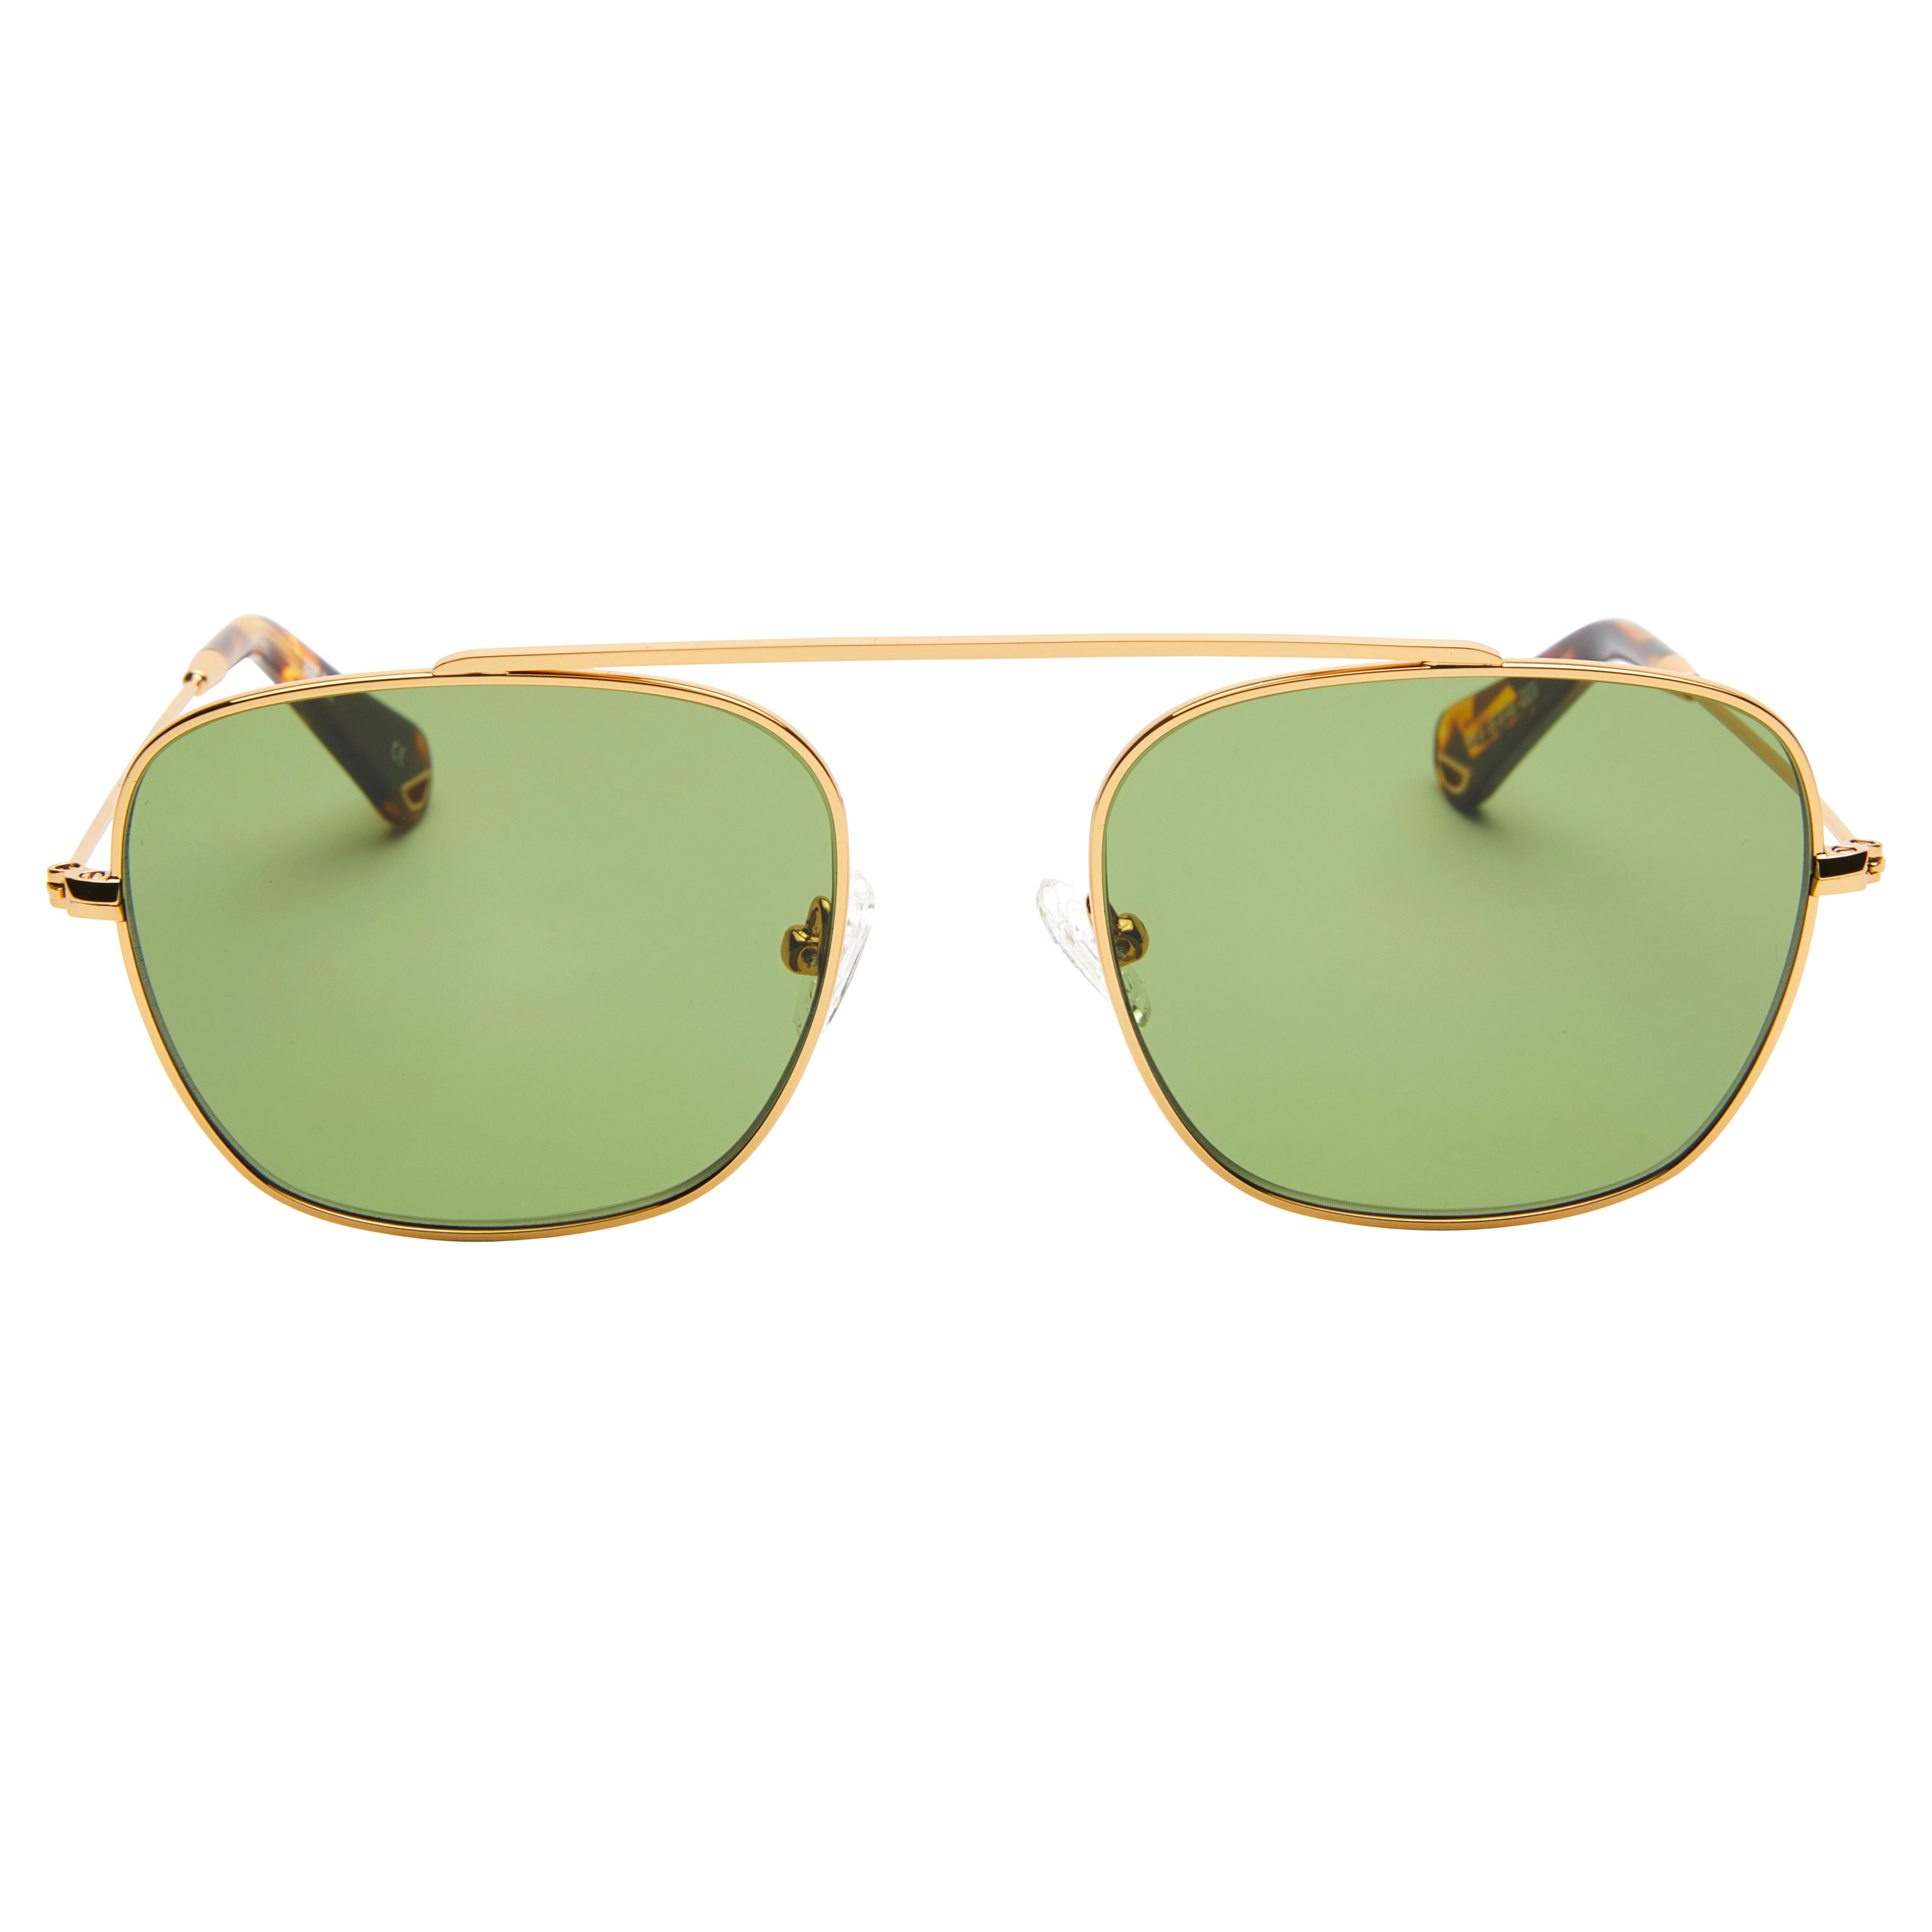 88a08e4031 South 2 - Vintage Gold with Green lens - Pacifico Optical